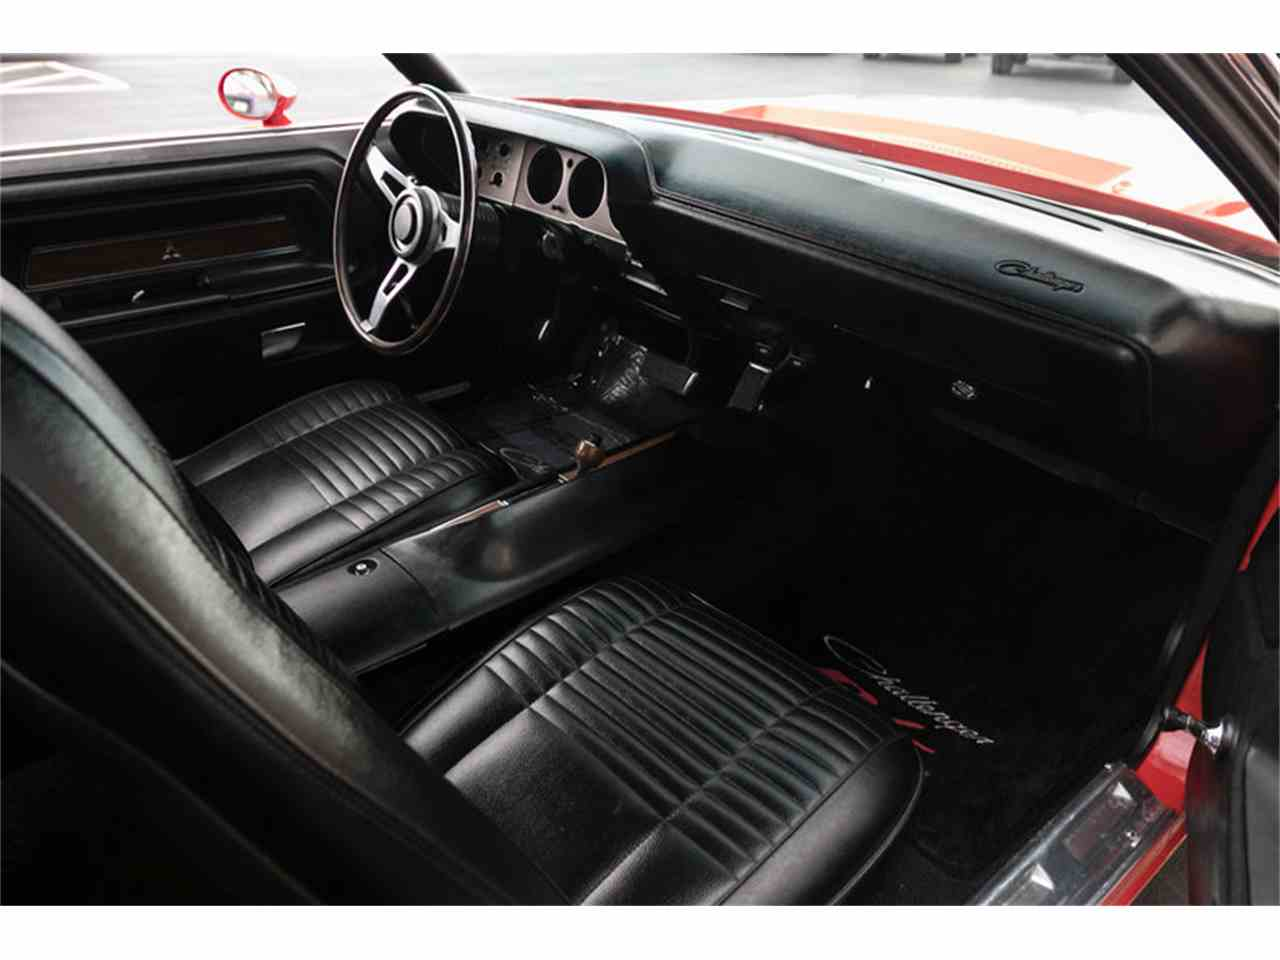 Large Picture of Classic 1970 Dodge Challenger R/T located in St. Charles Missouri - $89,995.00 - MF41